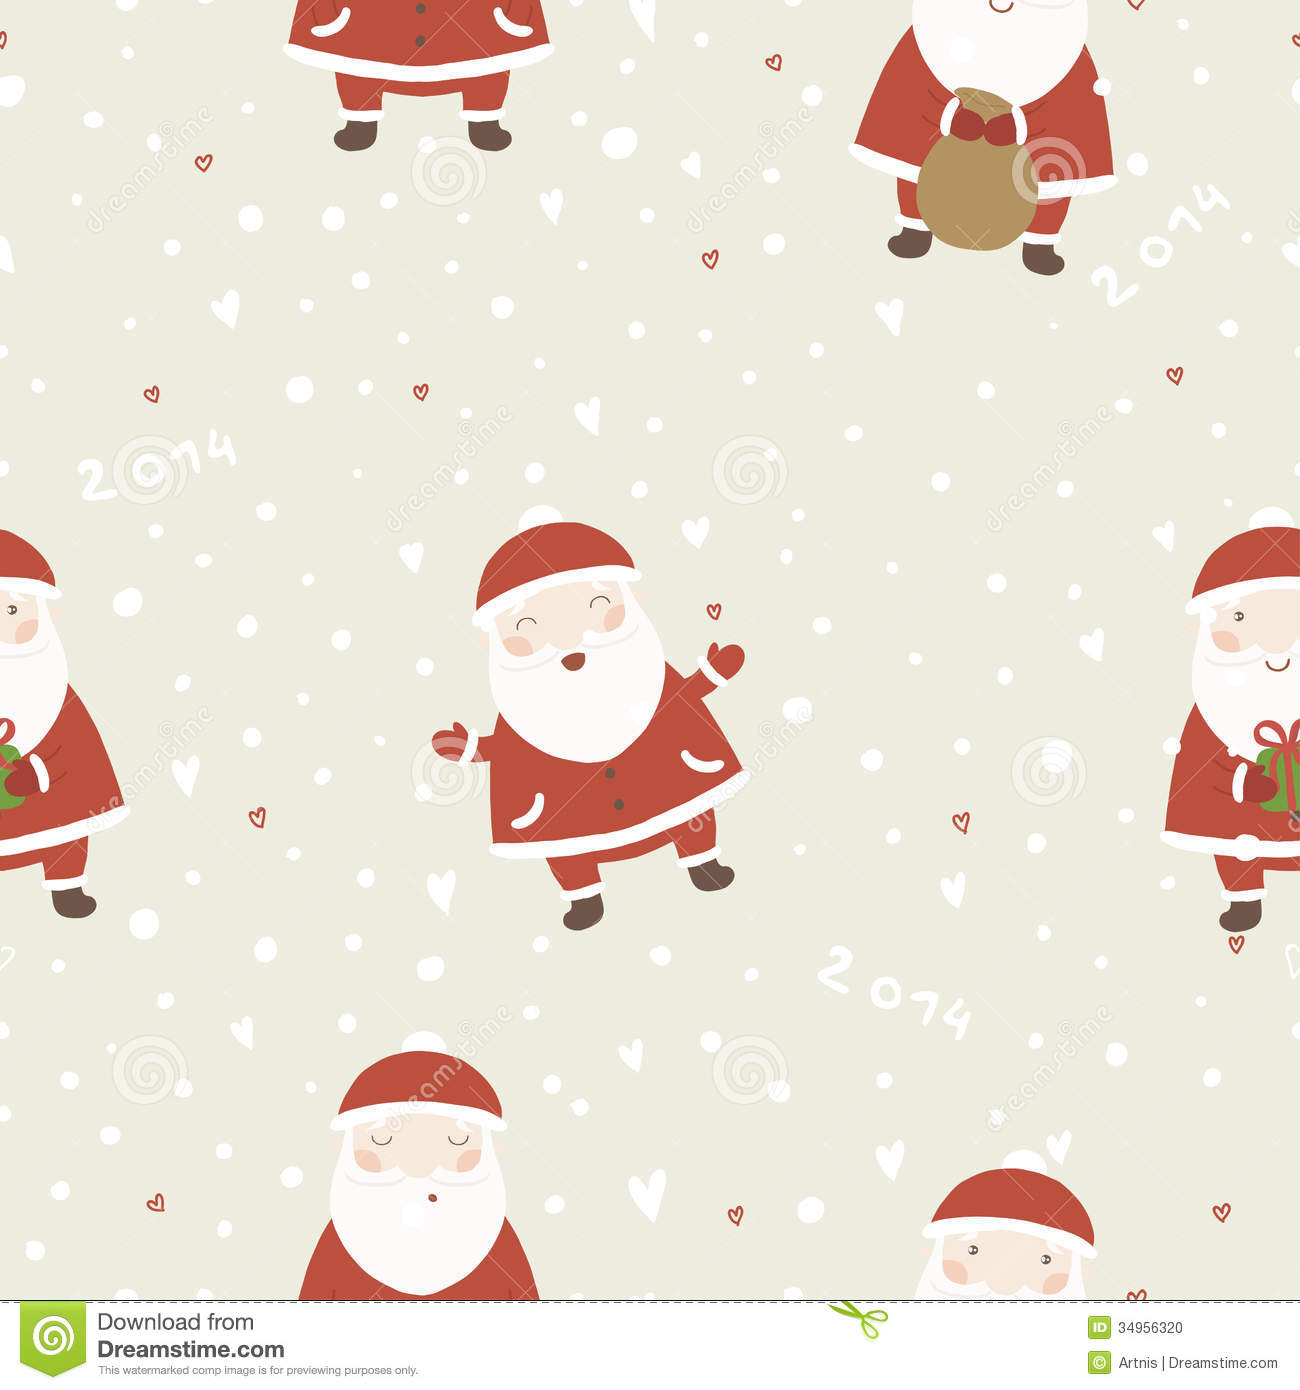 Christmas Background With Santa Claus. Stock Photo - Image: 34956320